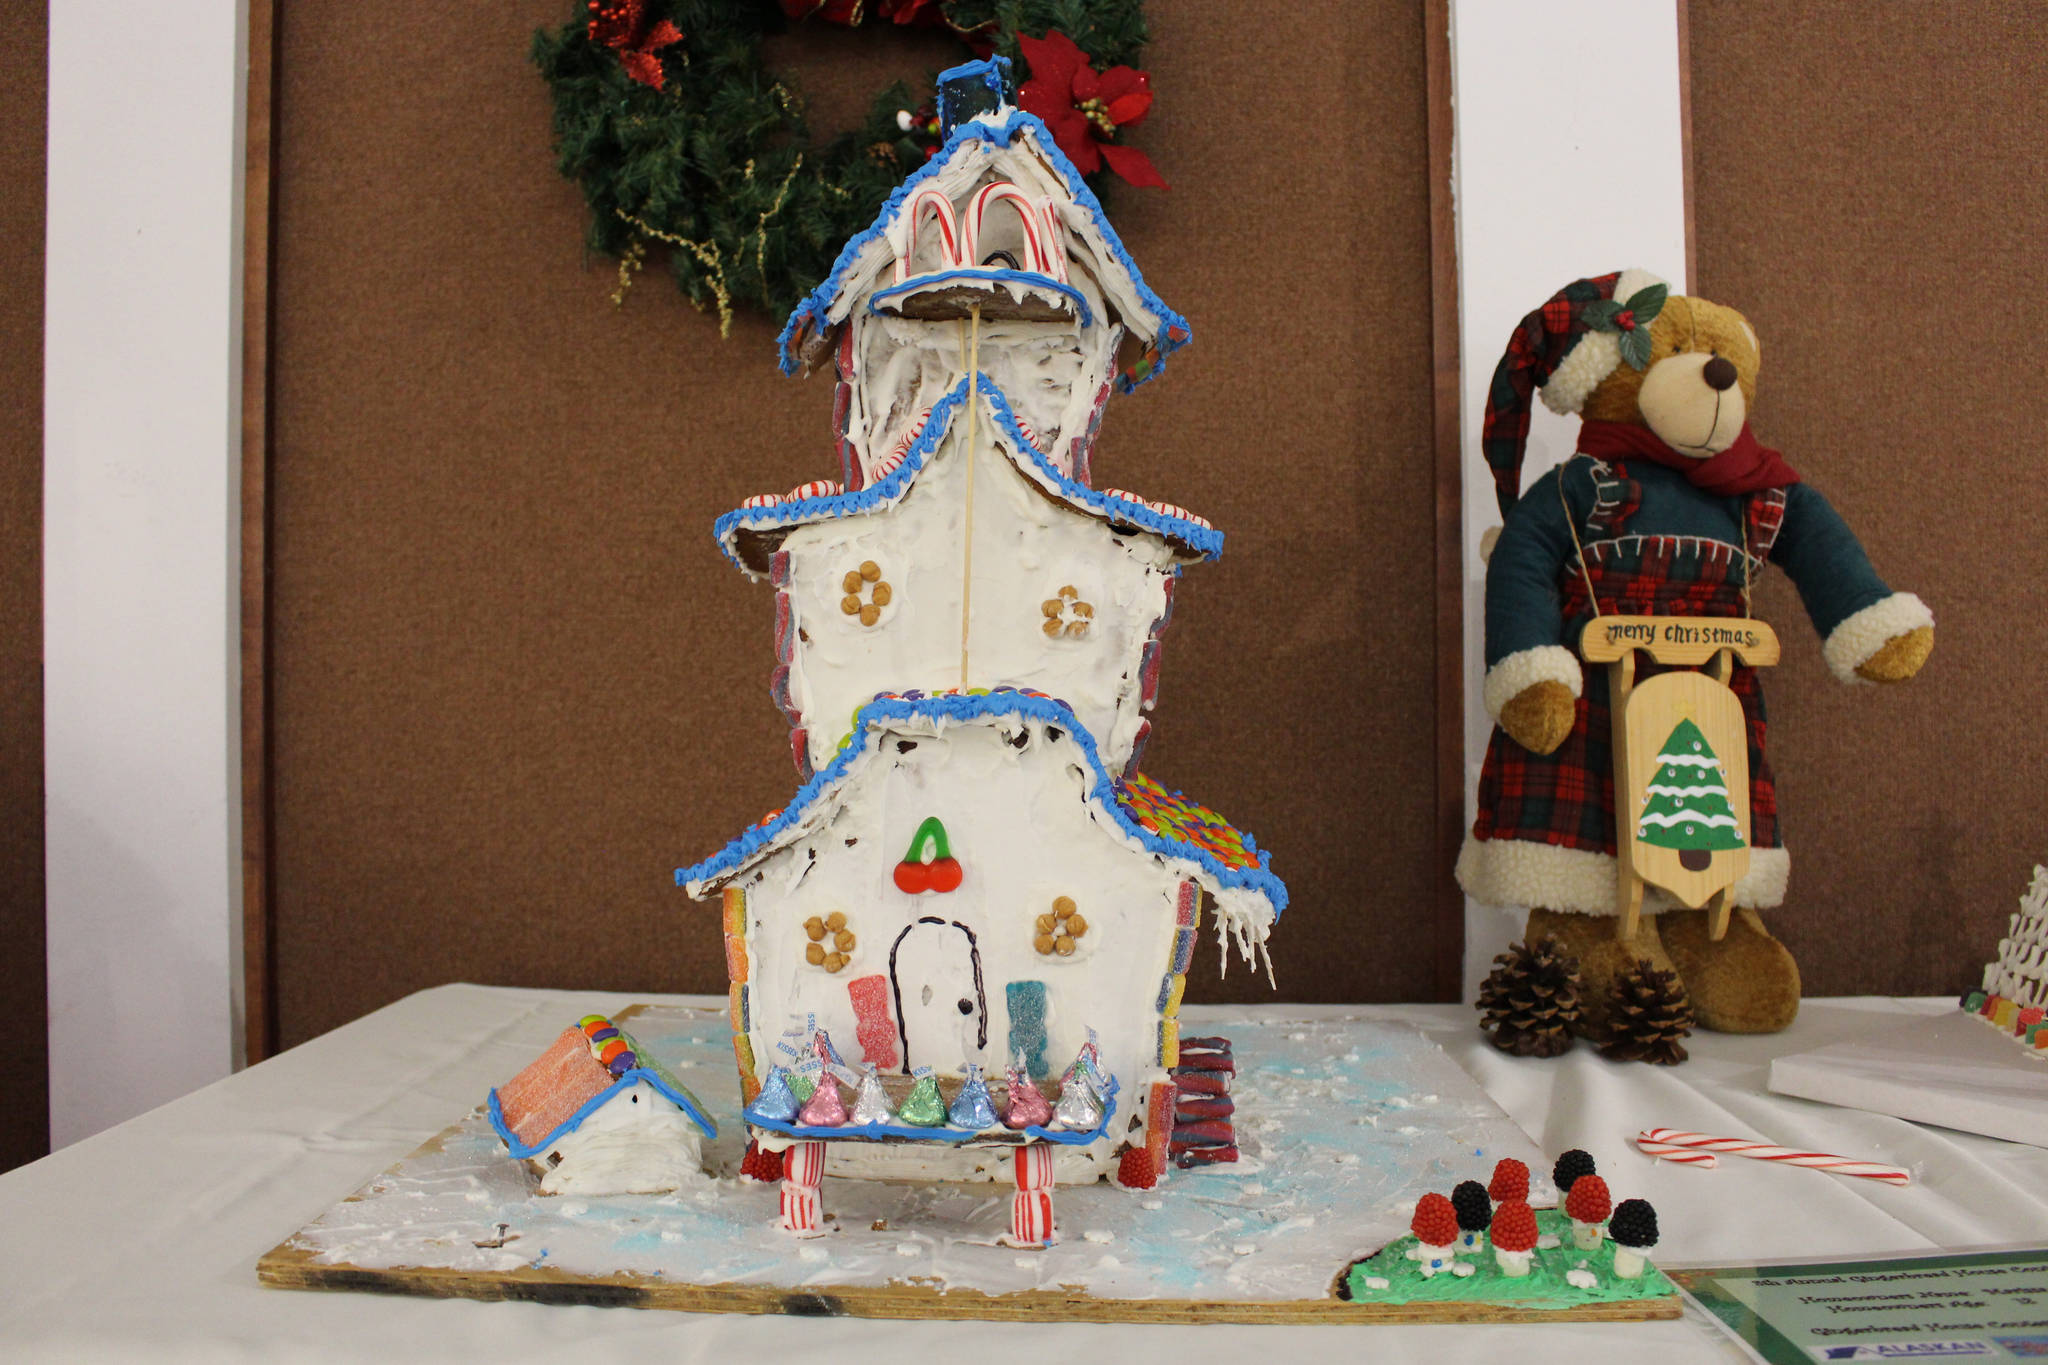 A gingerbread house created by Marissa Moffis, age 12, is seen on display at the Kenai Visitors and Cultural Center on Dec. 8, 2020. (Photo by Brian Mazurek/Peninsula Clarion)